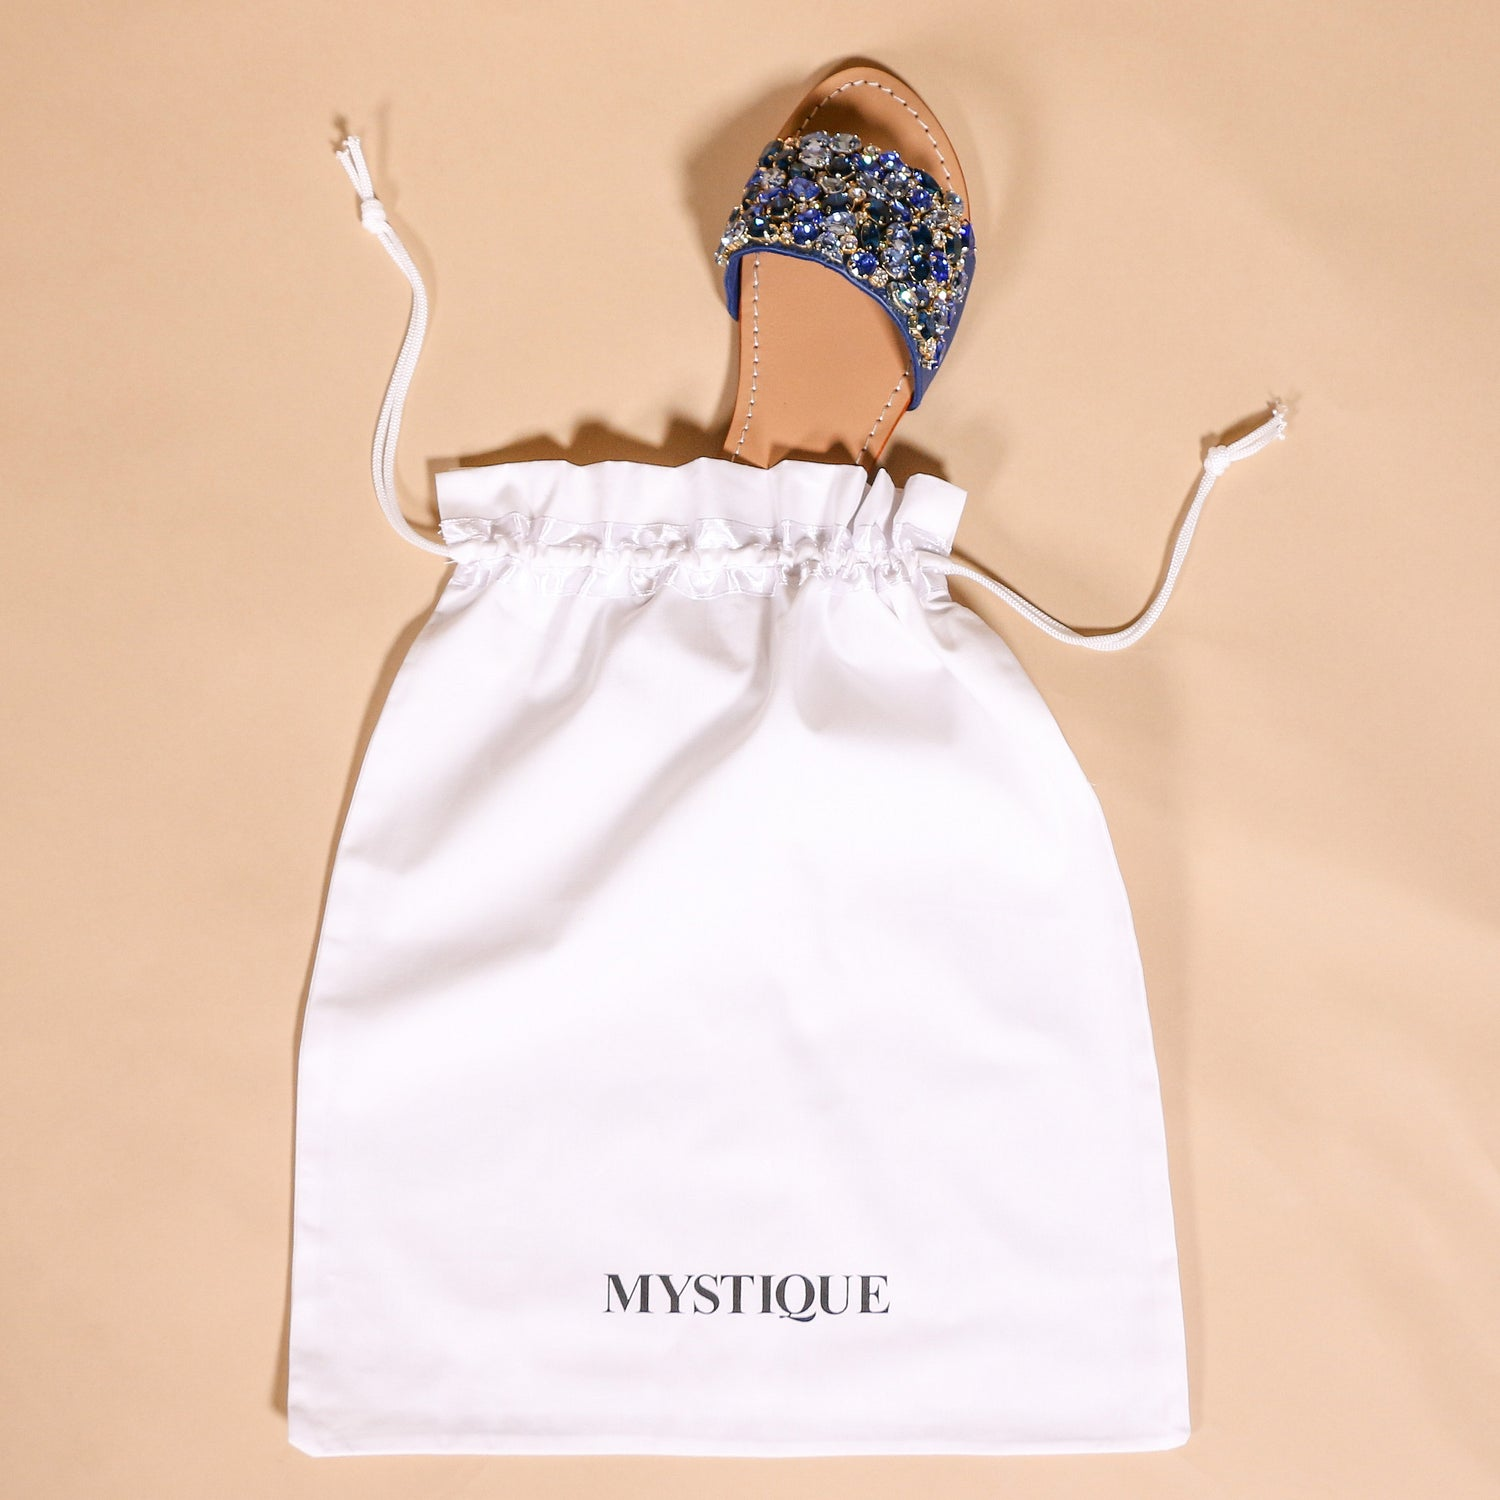 The Mystique Dust Bag